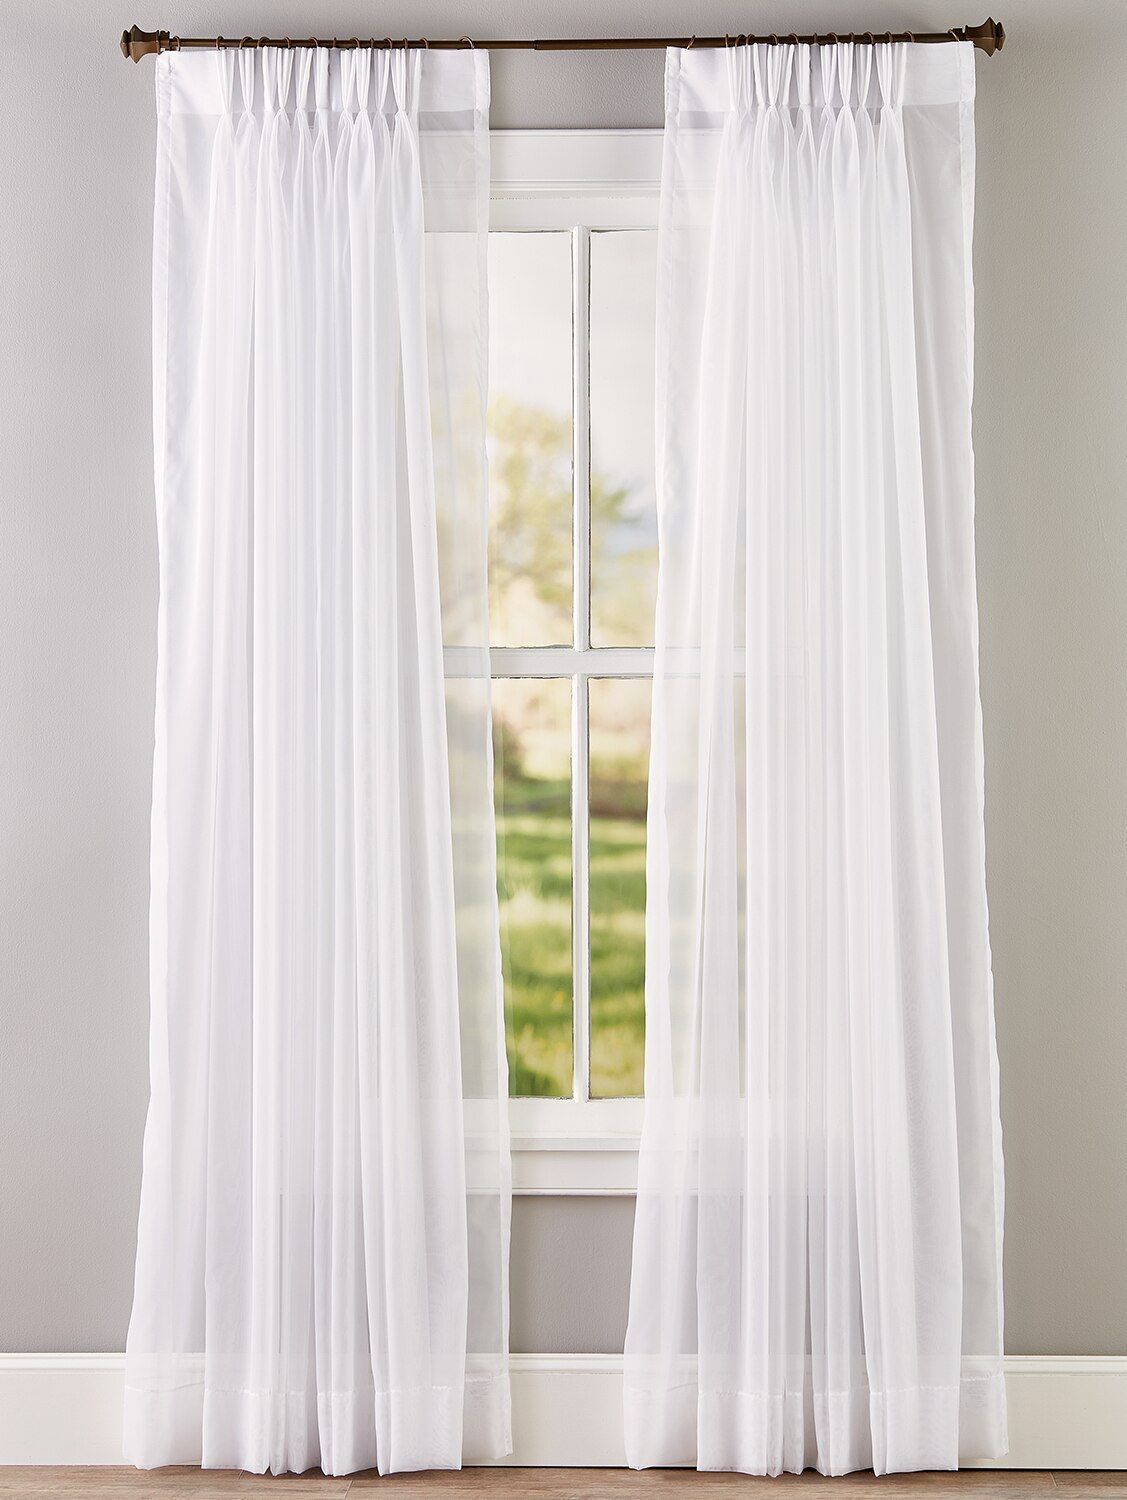 Classic Sheers 96 Inch And 144 Inch Pinch Pleat Curtains Natural 144in W X 84in L Pair Vermont Country Store In 2021 Curtains Pinch Pleat Large Window Curtains